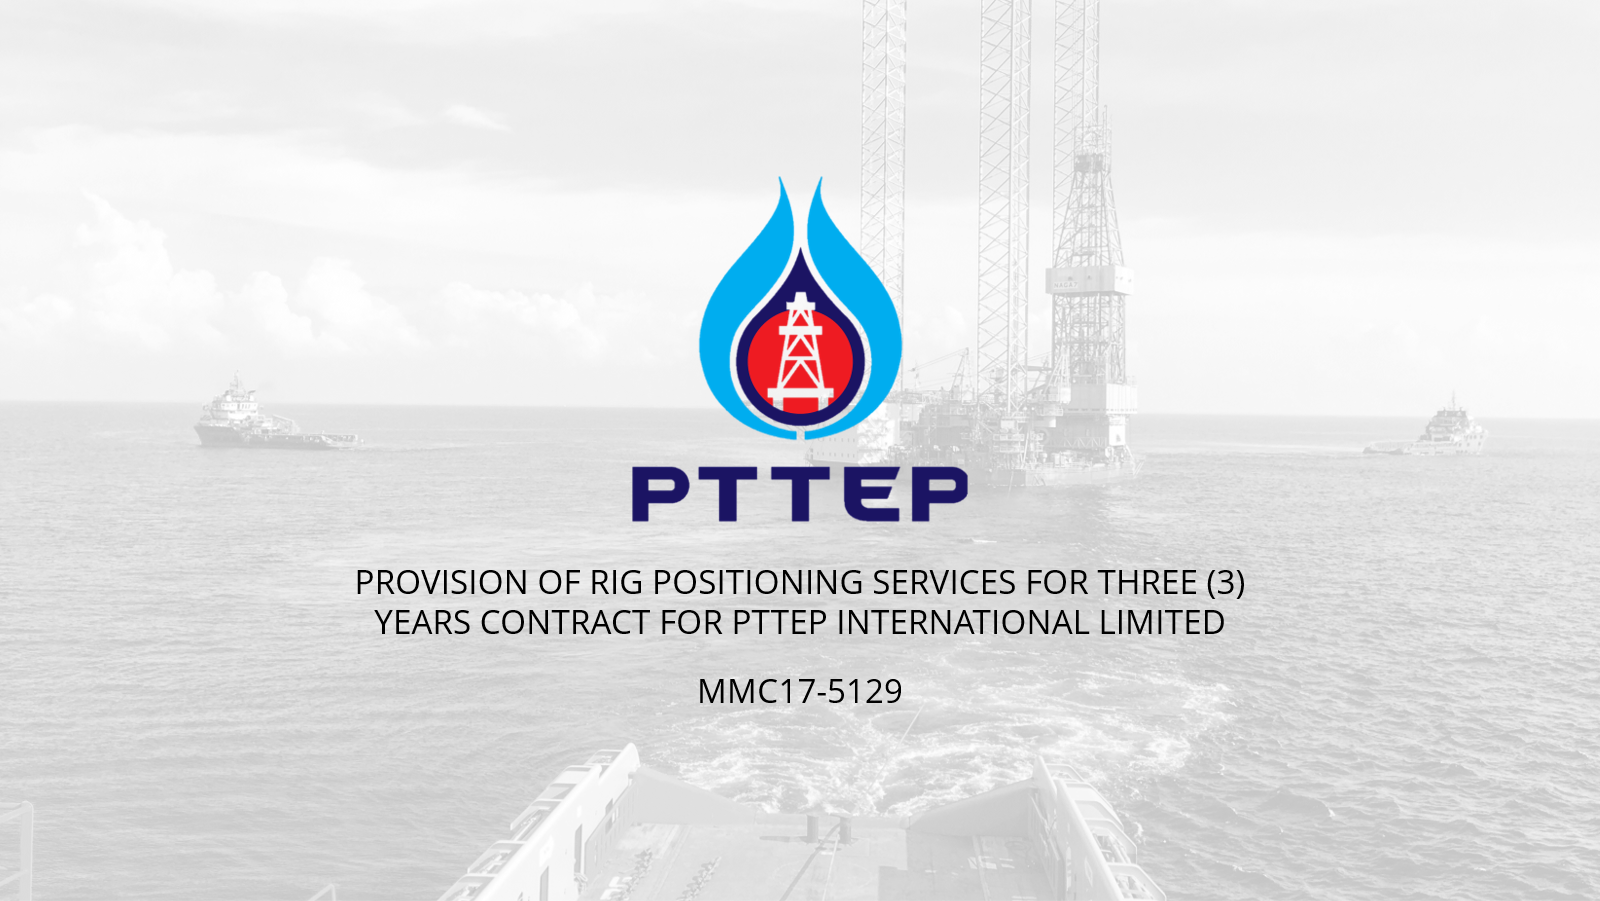 Provision of Rig Positioning Services for Three (3) Years Contract (Myanmar Asset) for PTTEP International Limited